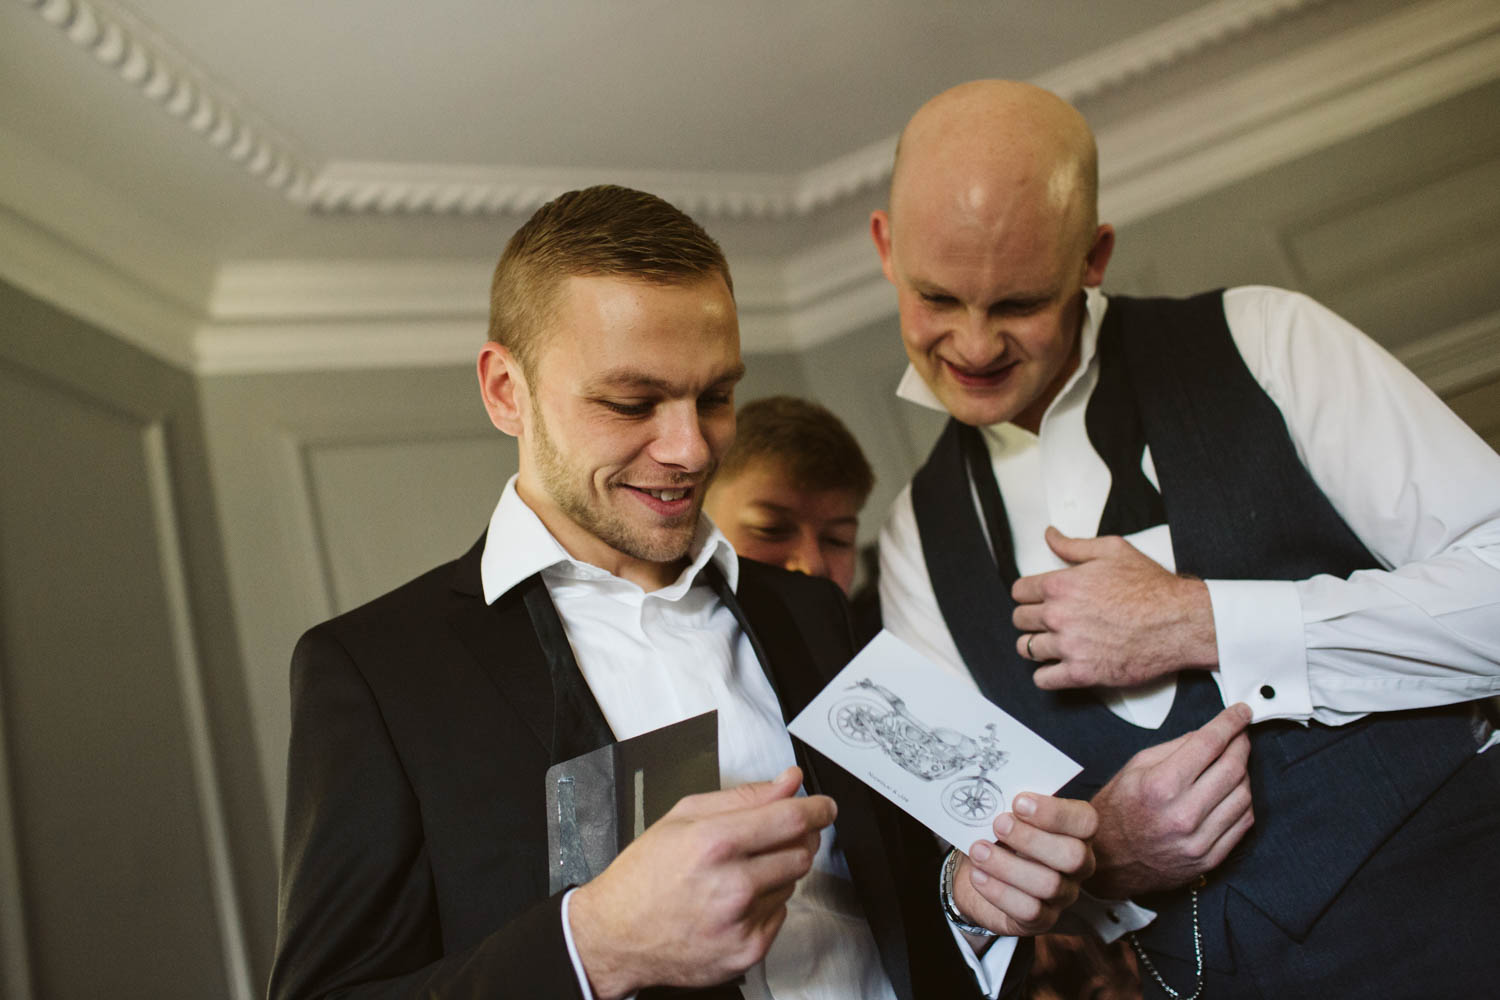 the groomsmen reading a card from the bride